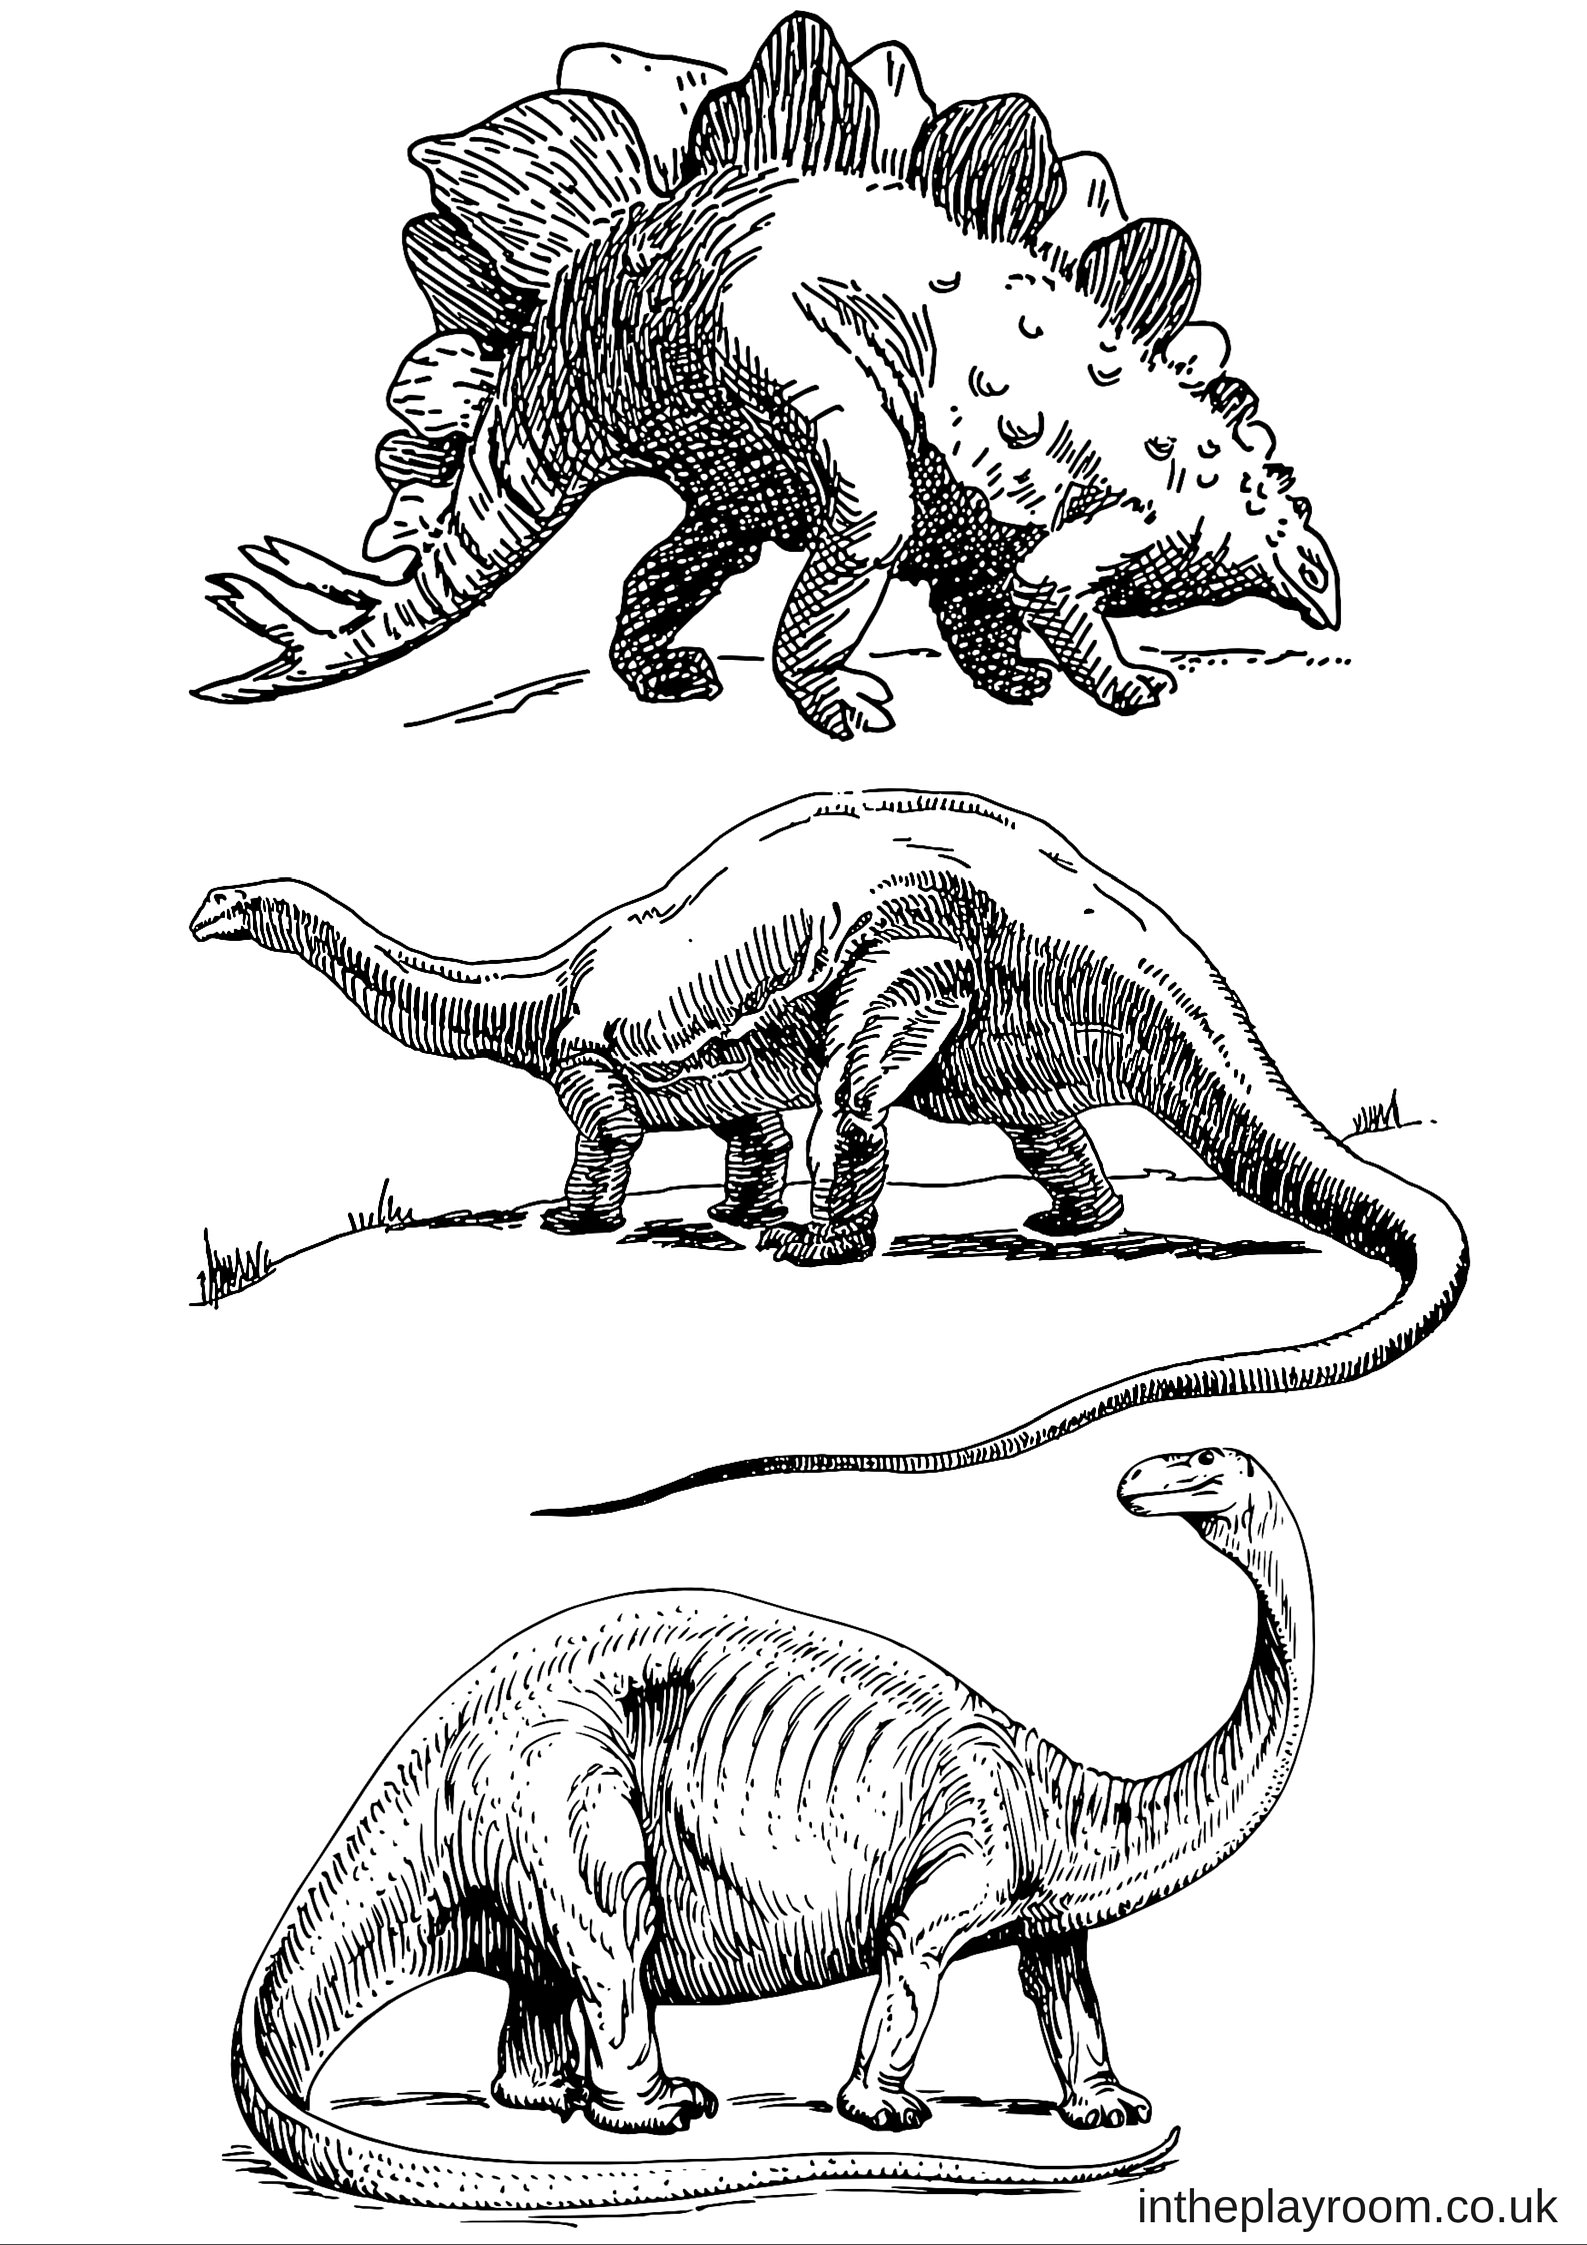 coloring dinosaurs coloring pages dinosaur free printable coloring pages coloring dinosaurs 1 1